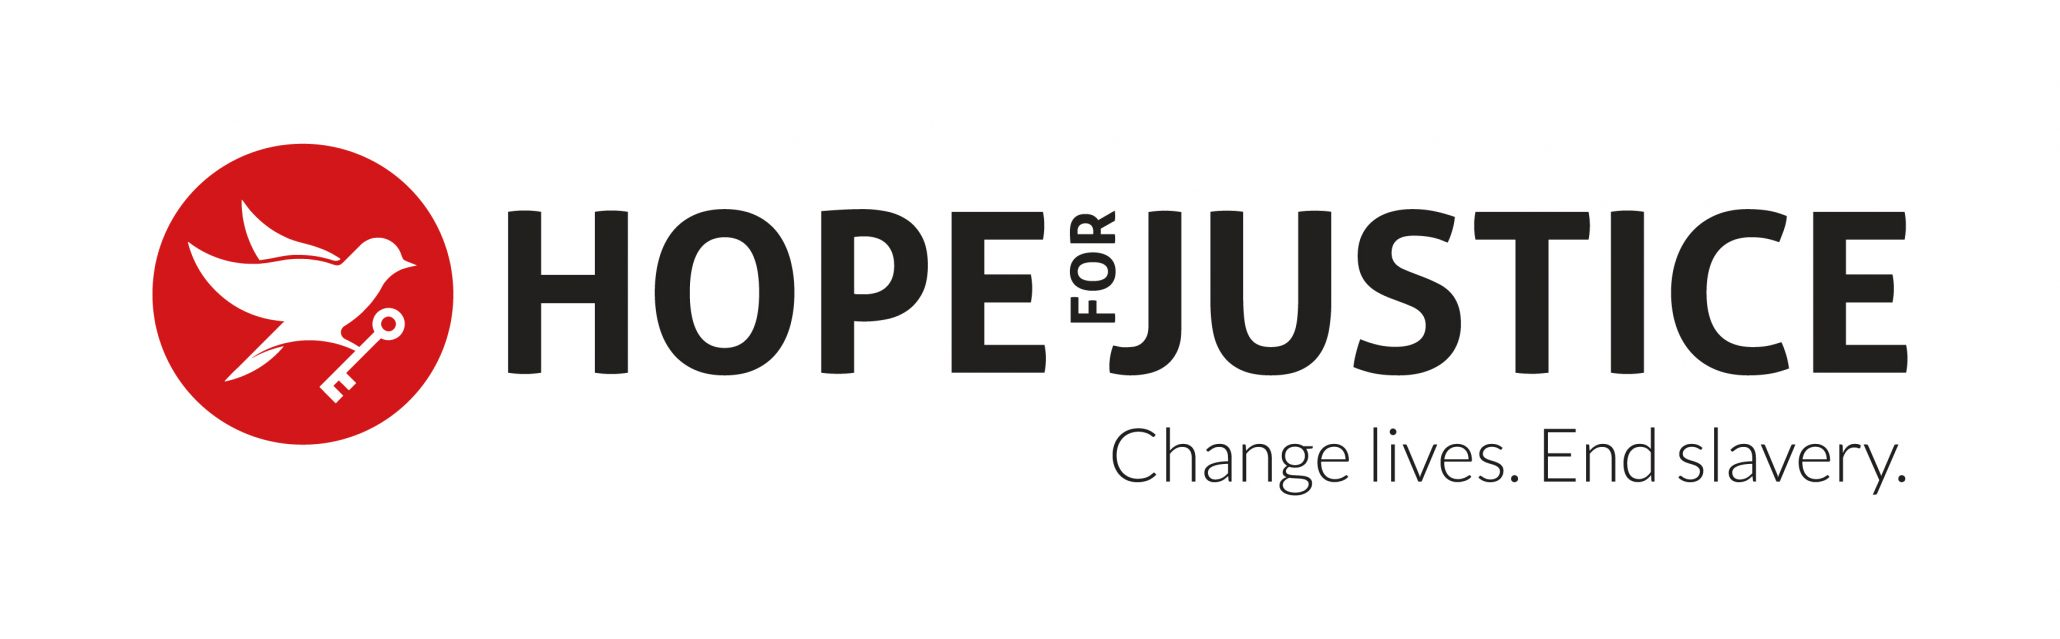 Hope_for_Justice_logo_2017